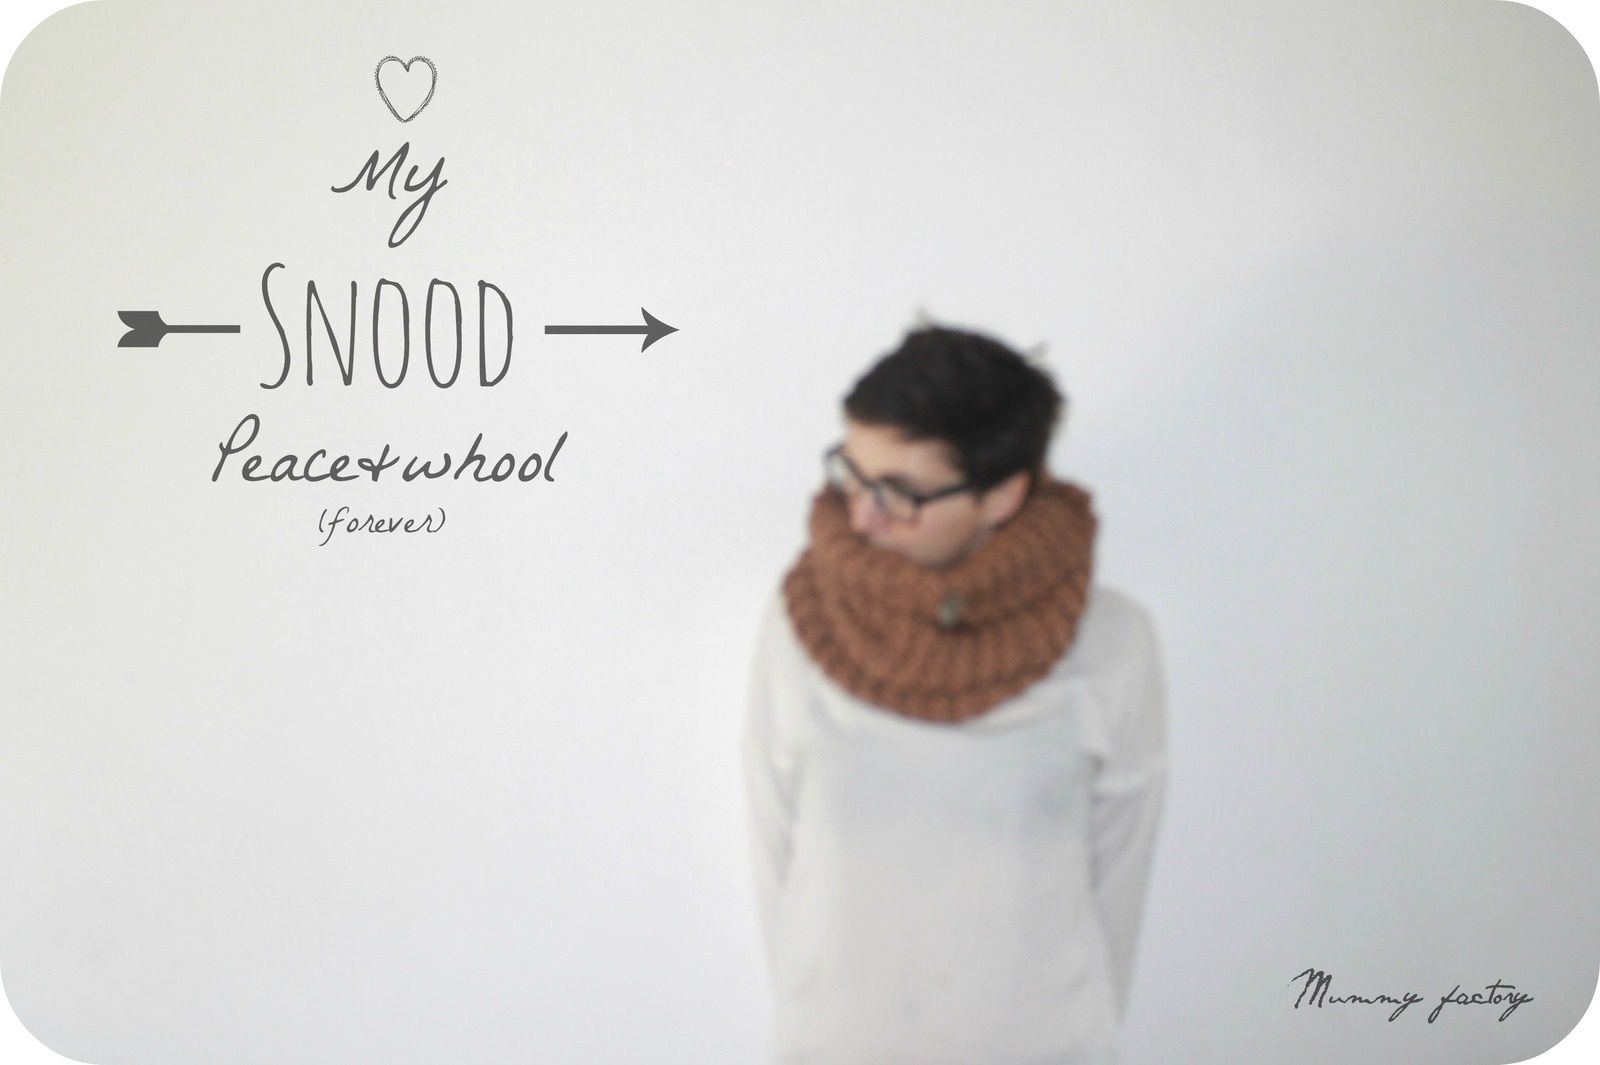 Love in Mon snood PEACE &amp&#x3B; Wool  (DiY)